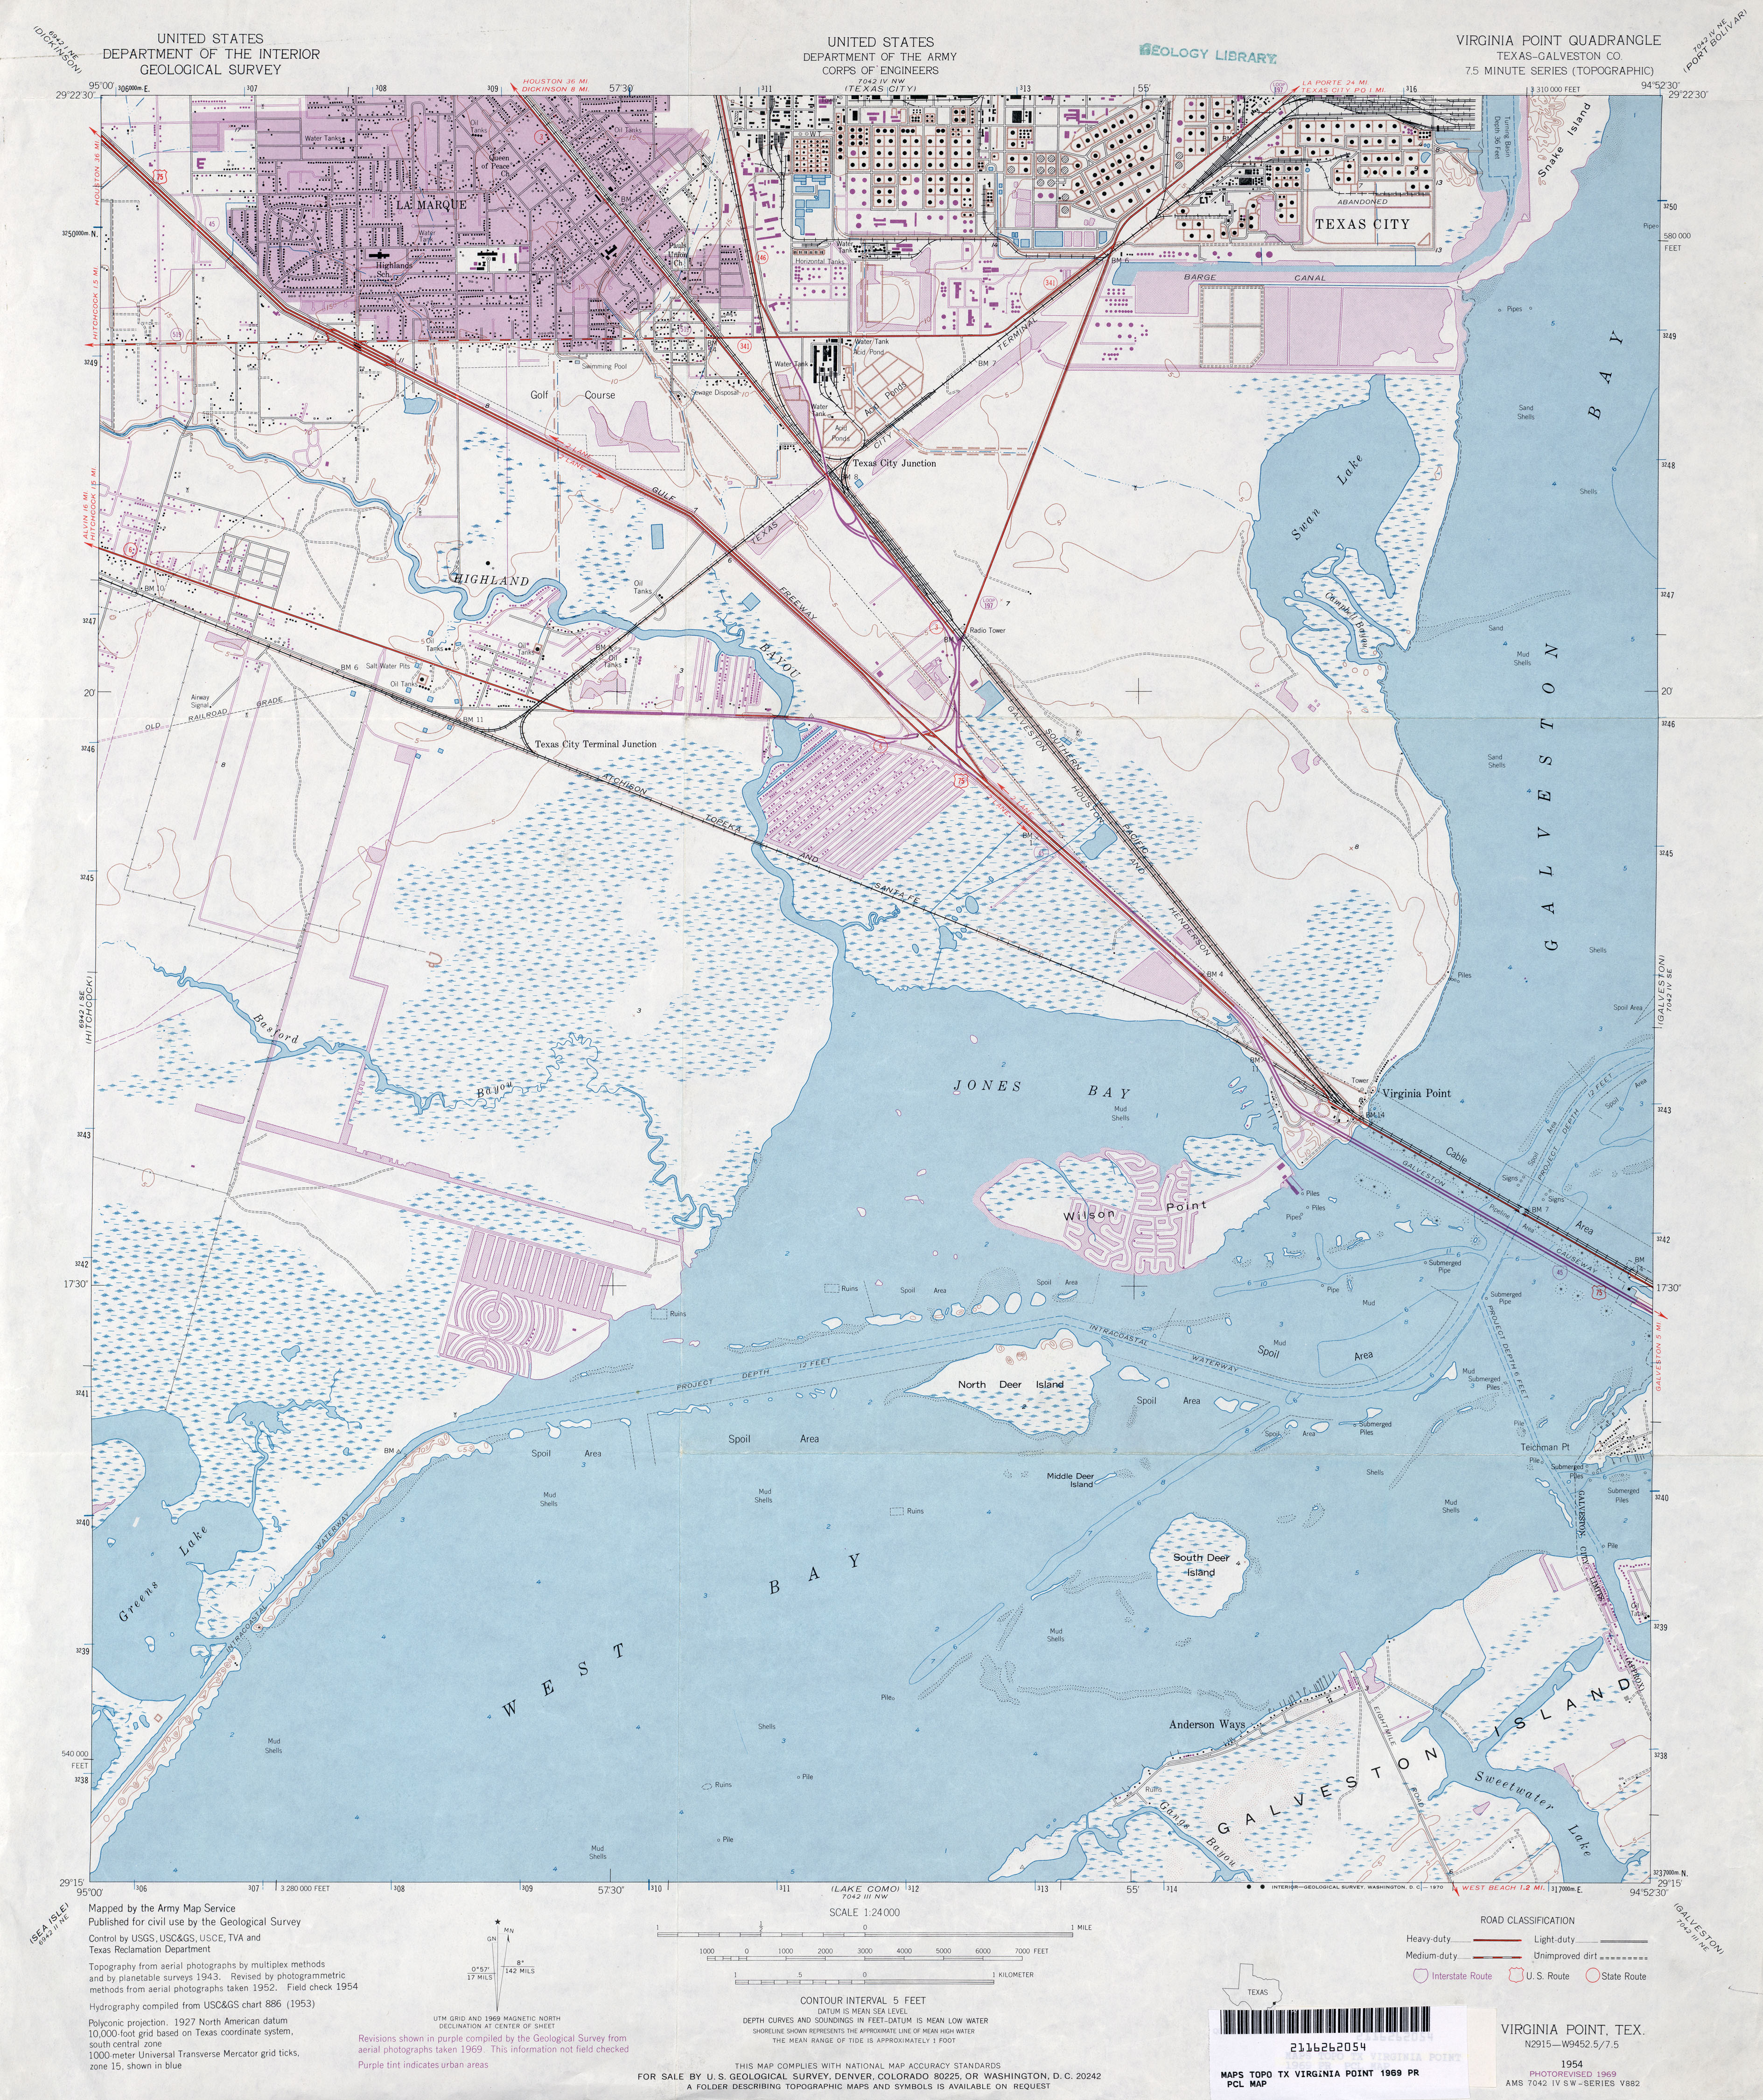 Texas Topographic Maps - Perry-Castañeda Map Collection - UT ... on